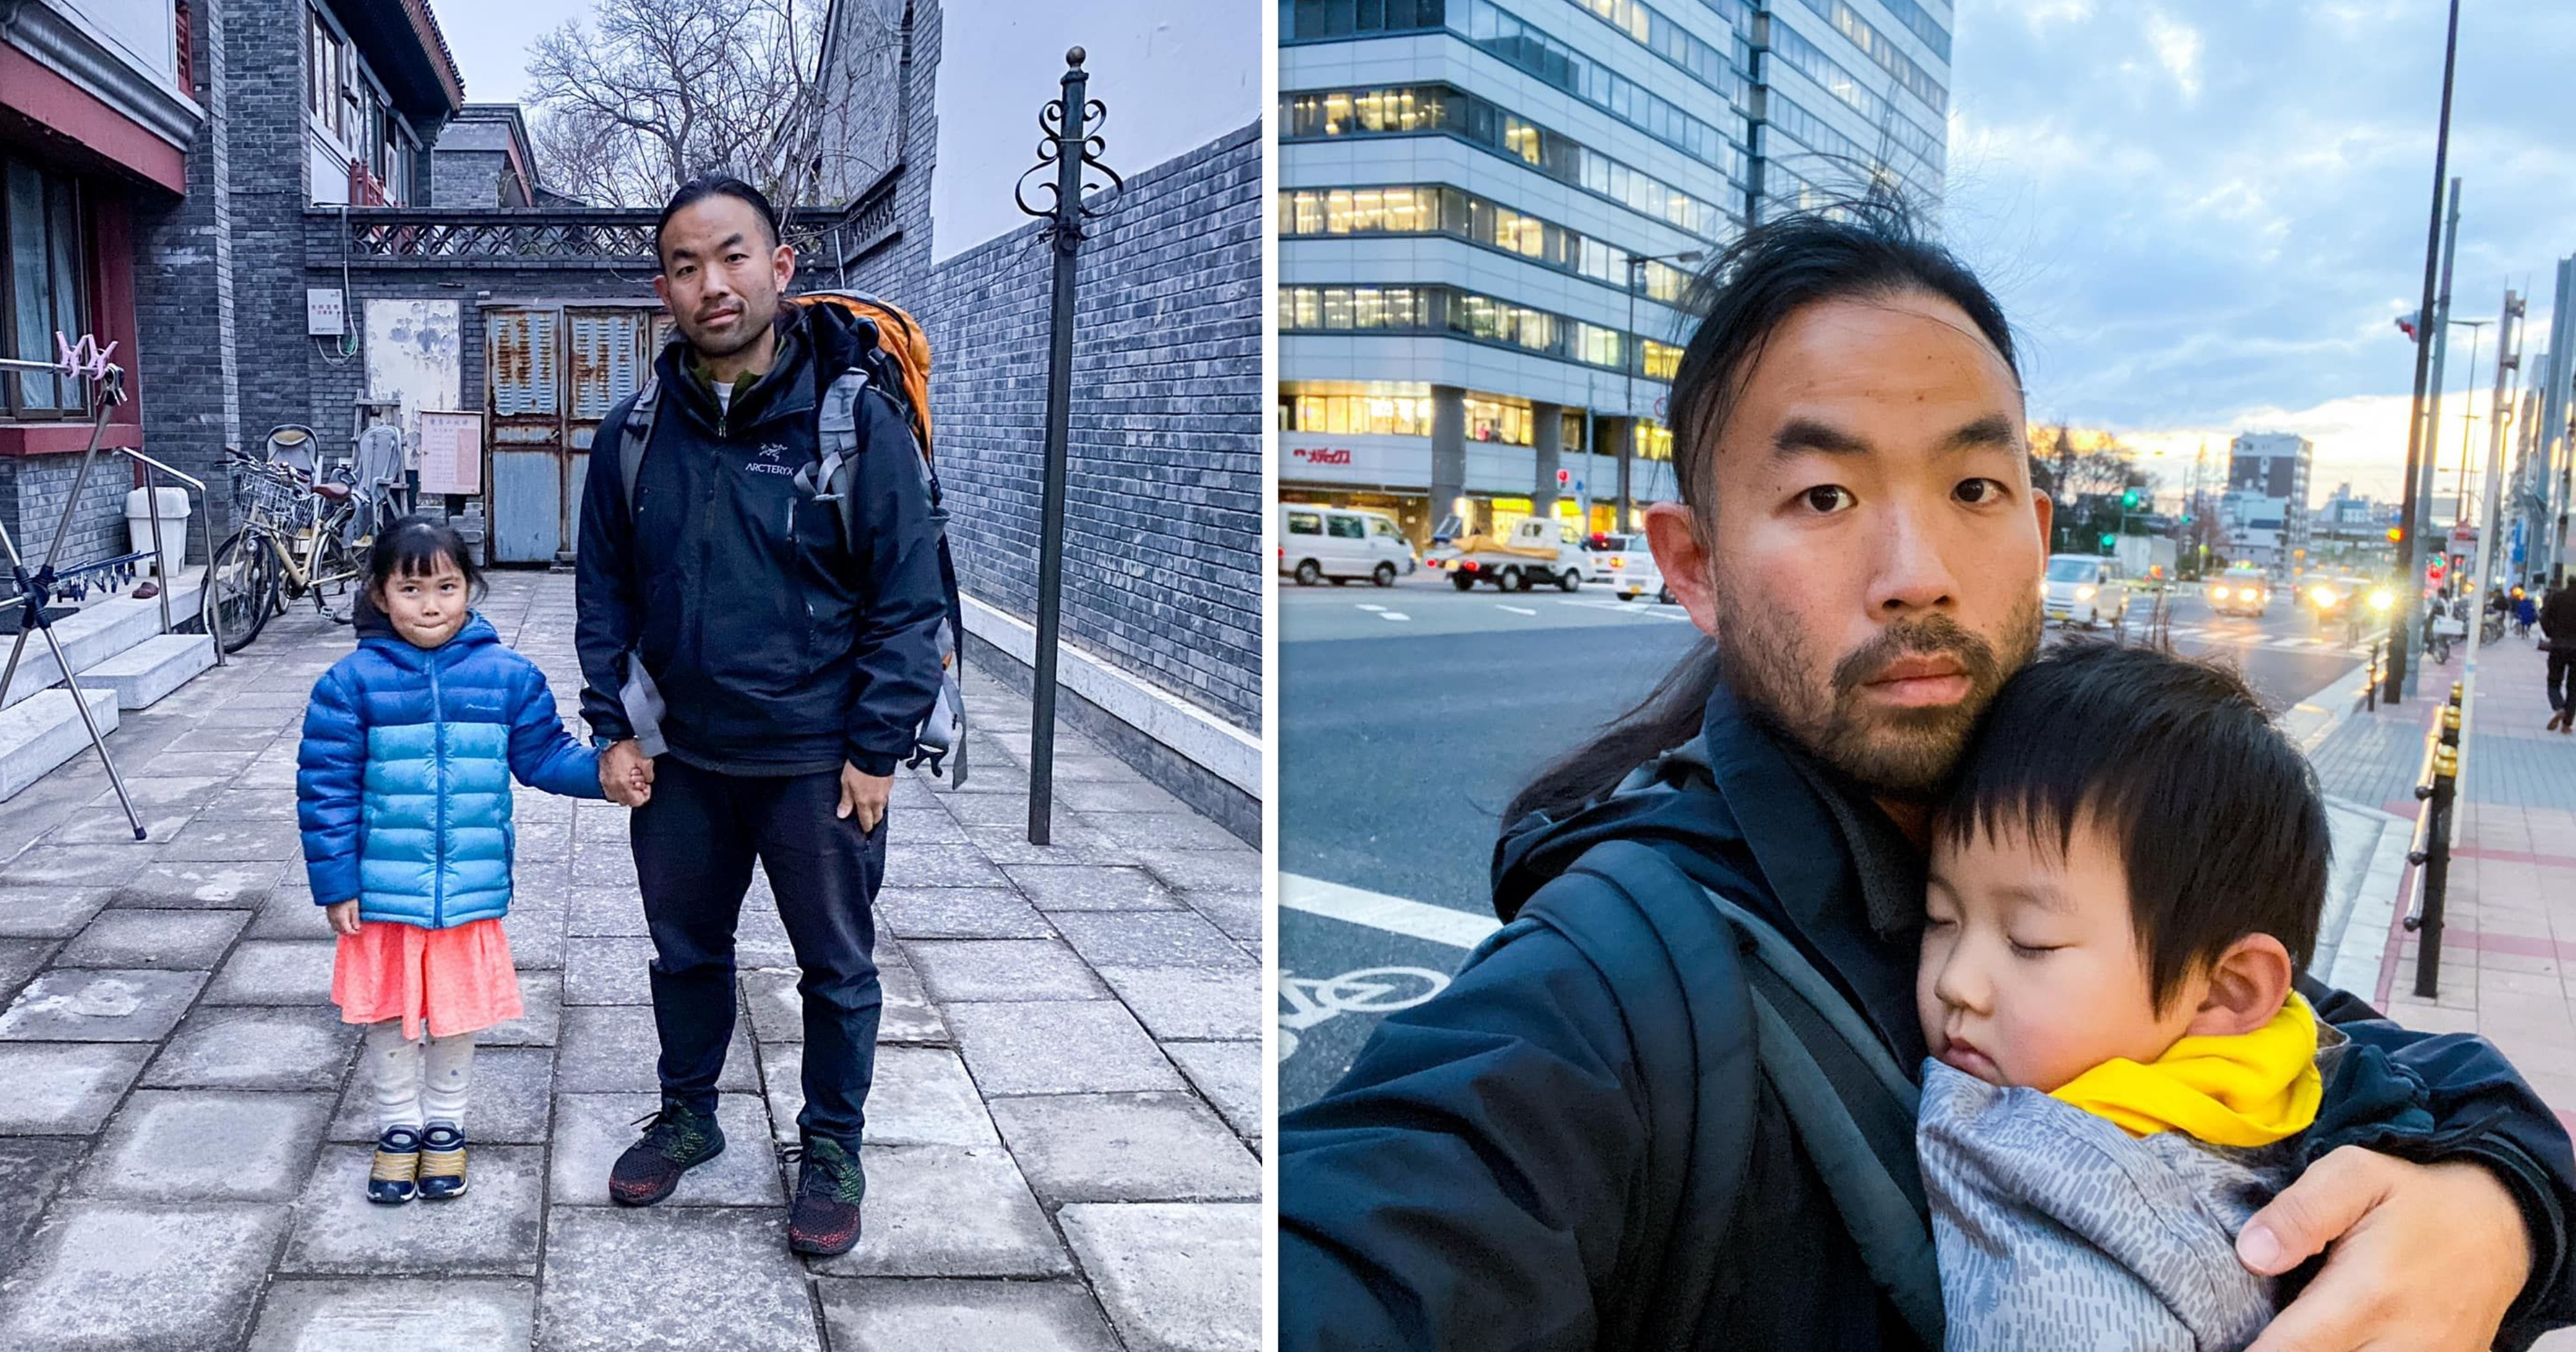 M'sian photographer brings his toddlers on solo travels for bonding & life lessons